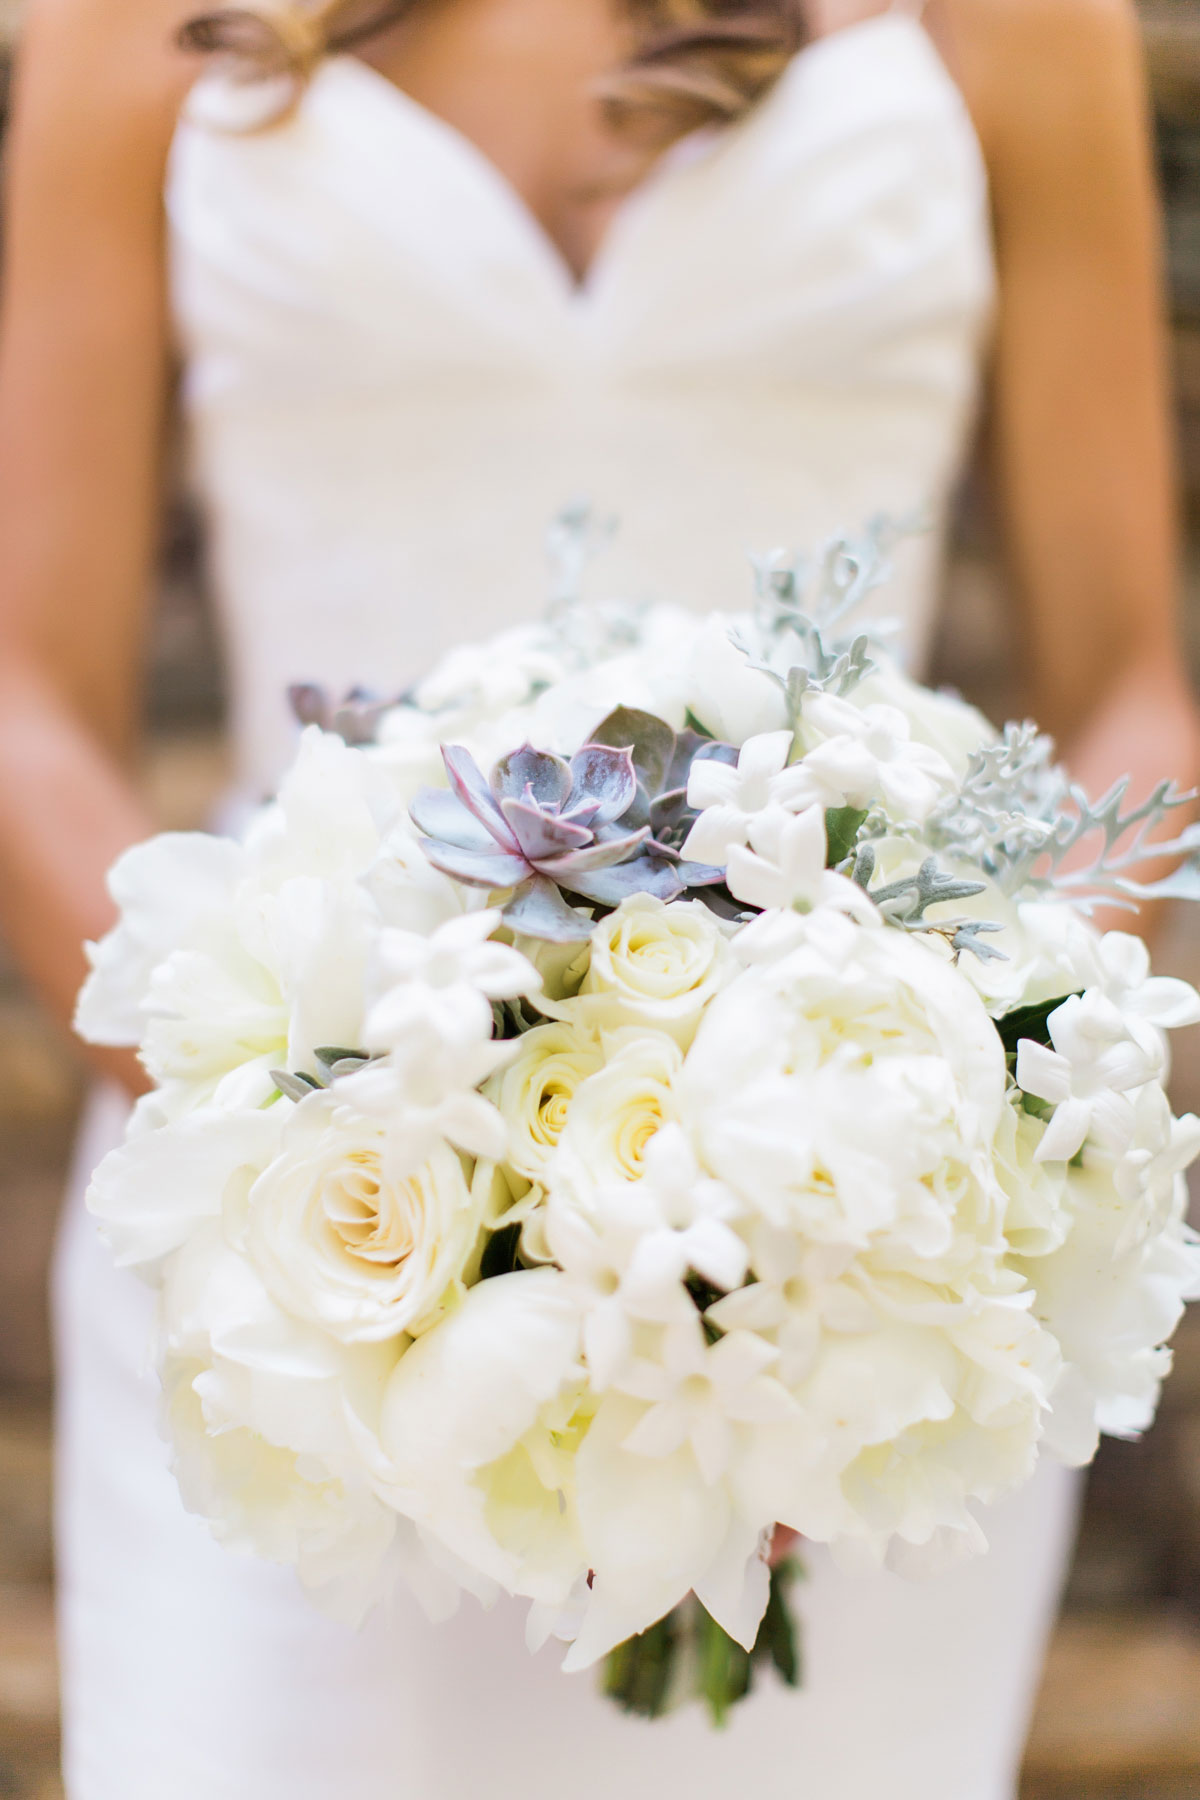 Up close shot of bouquet white flowers and succulents wedding detail shot photography